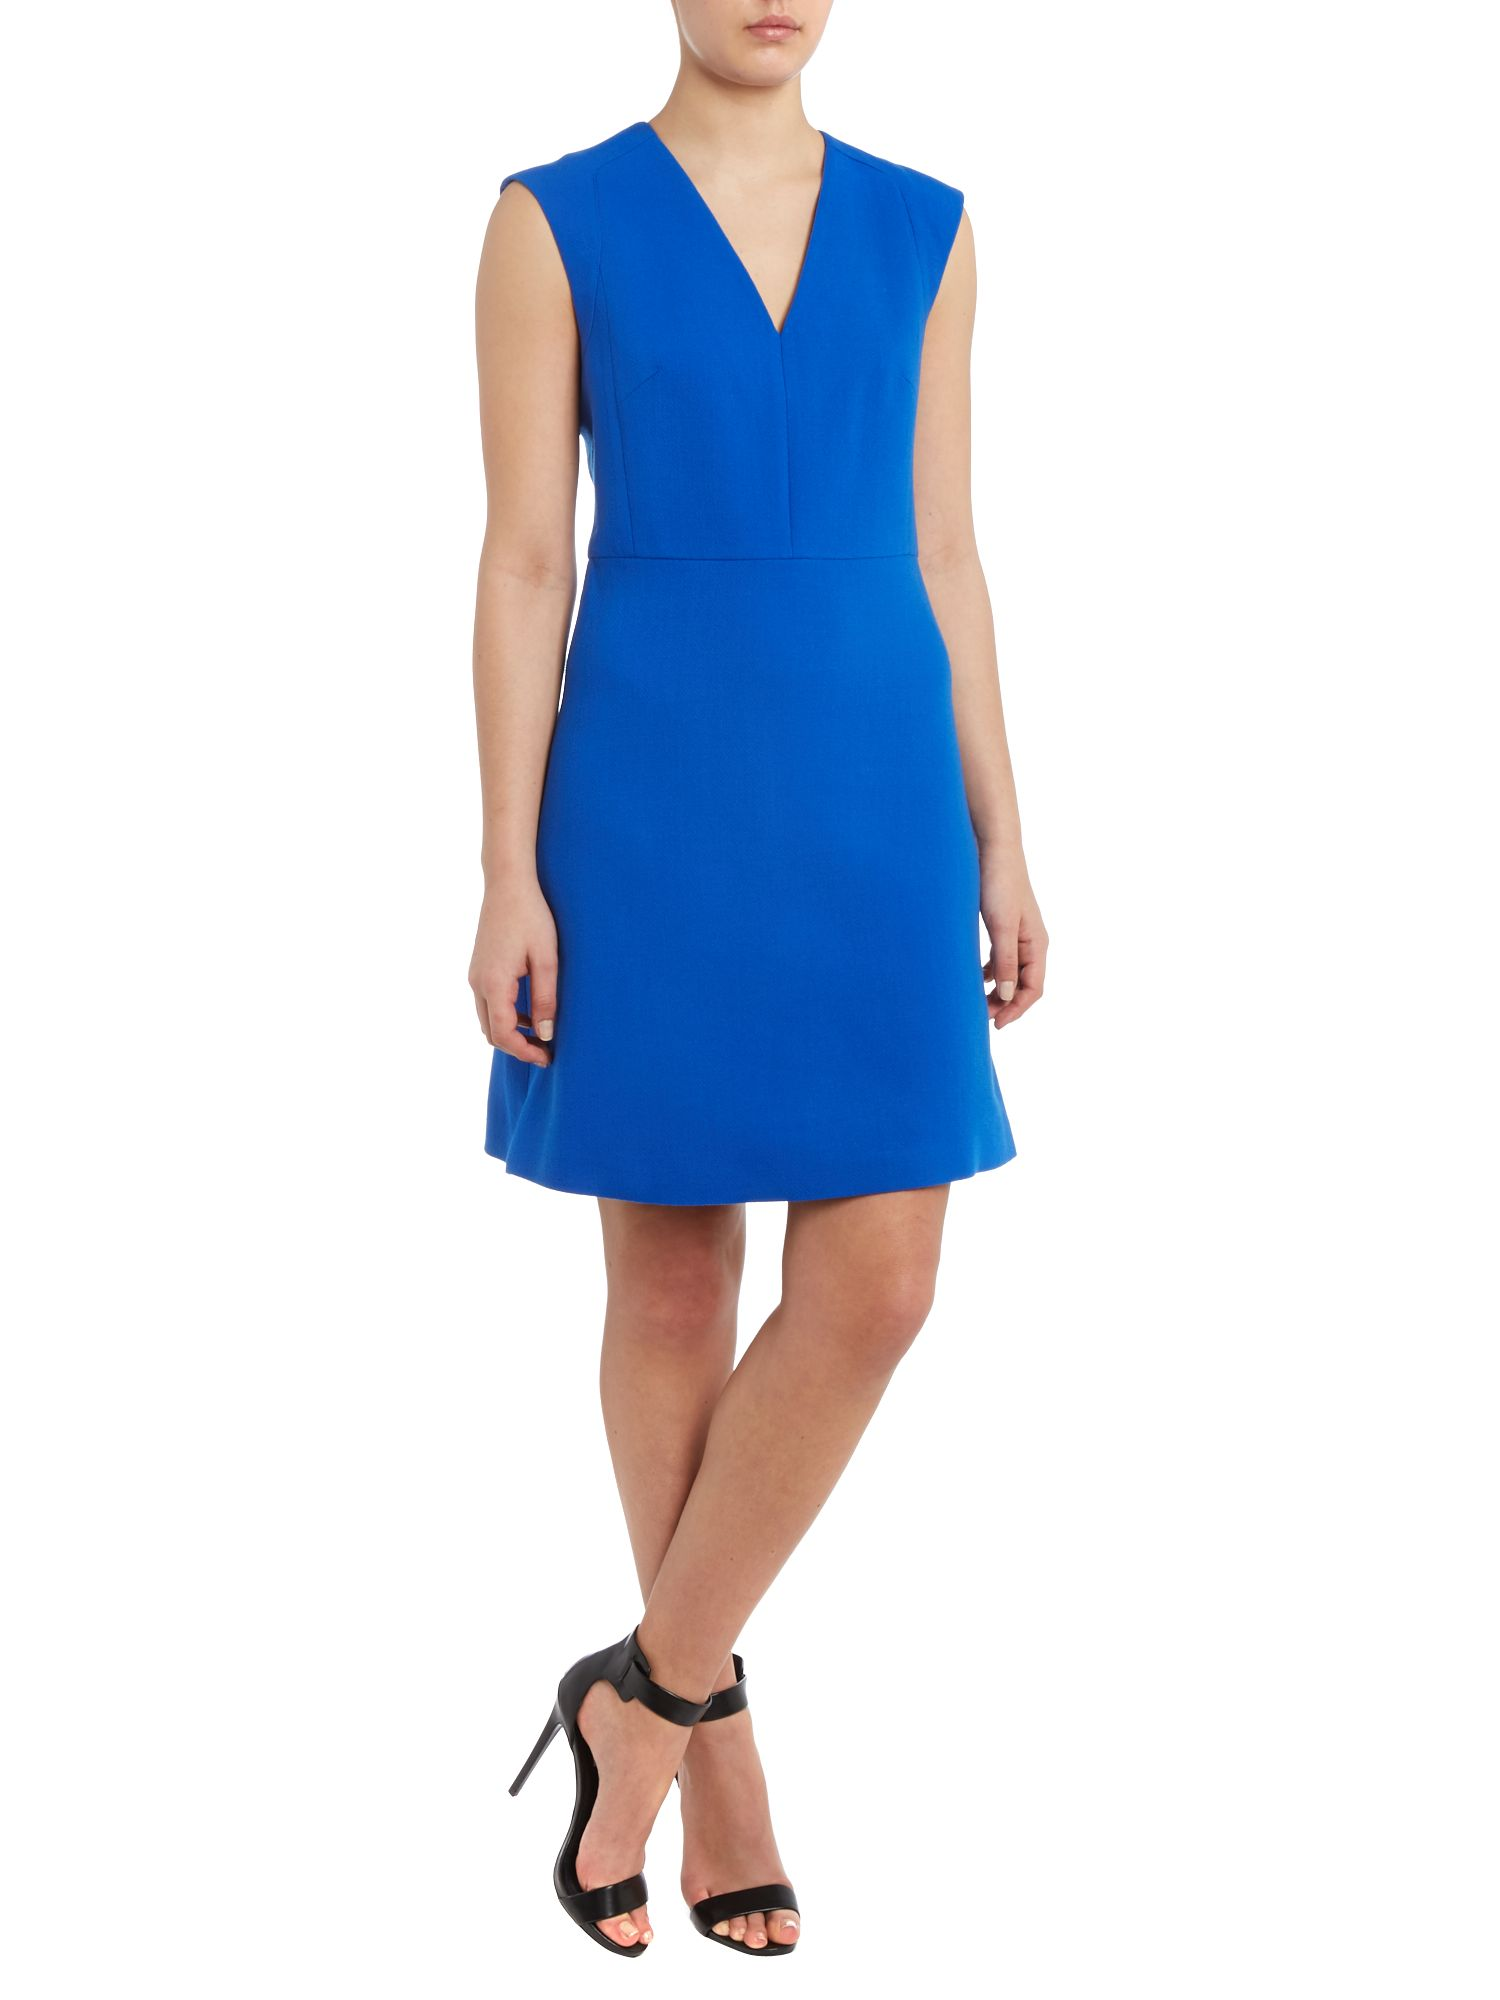 Sleeveless v neck dress with zip back